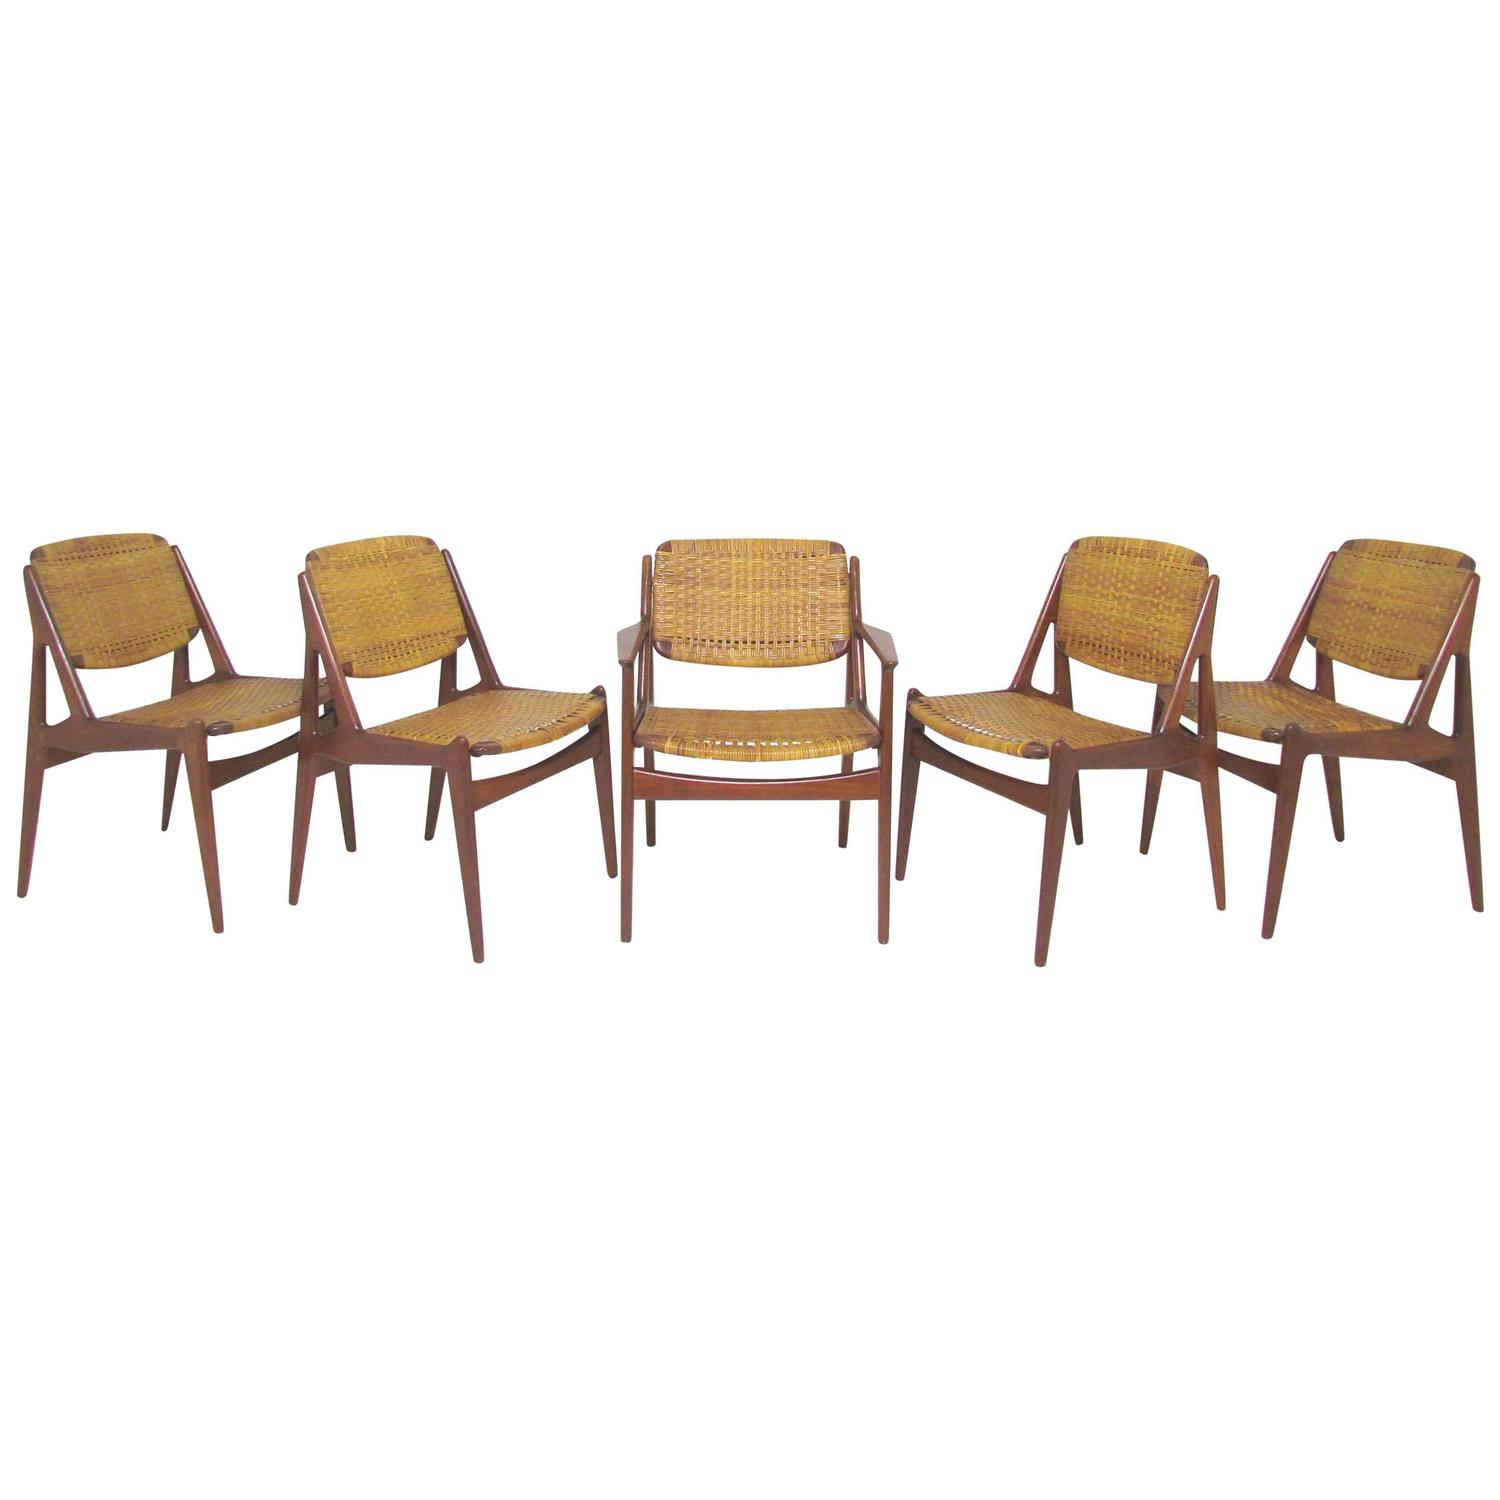 Danish Modern Arne Vodder Set of Six Dining Chairs with Cane Back